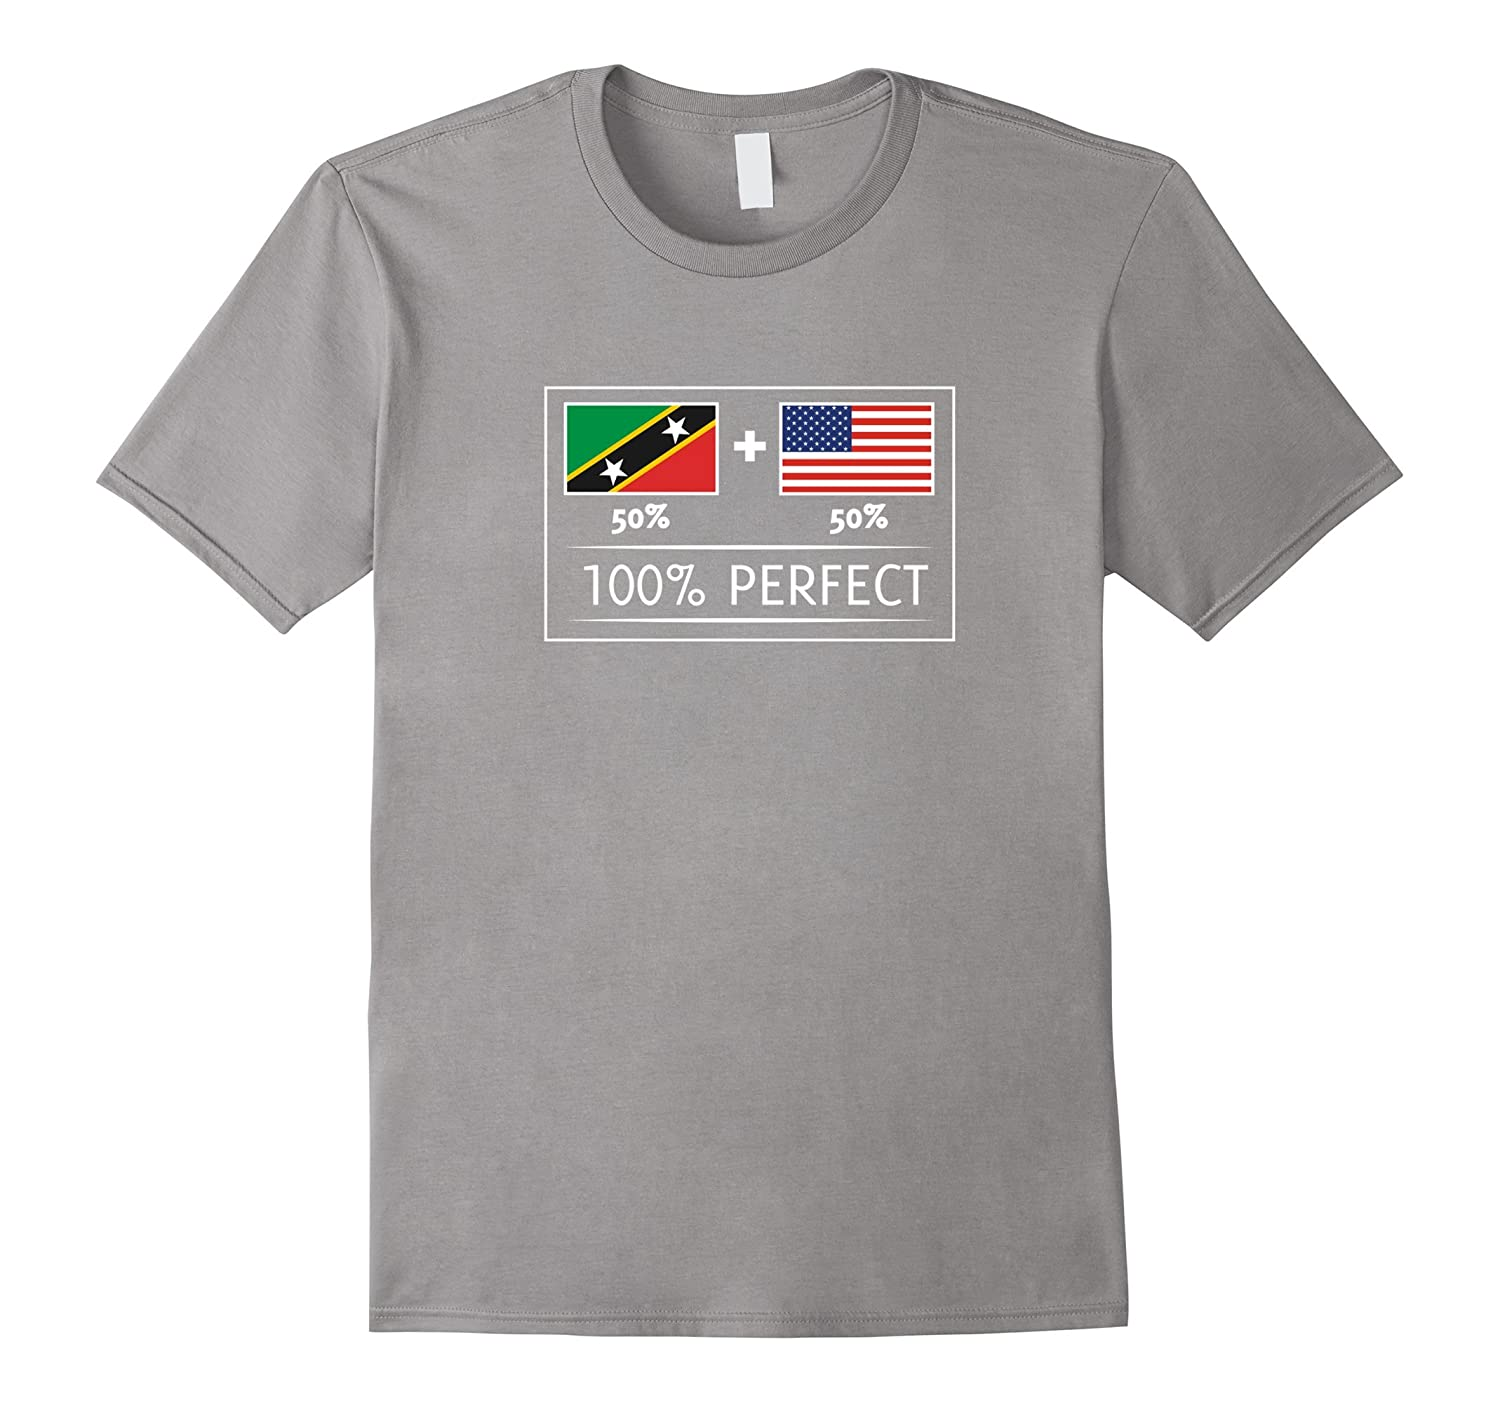 50% SAINT KITTS AND NEVIS 50% USA Flags 100% Perfect T shirt-Art